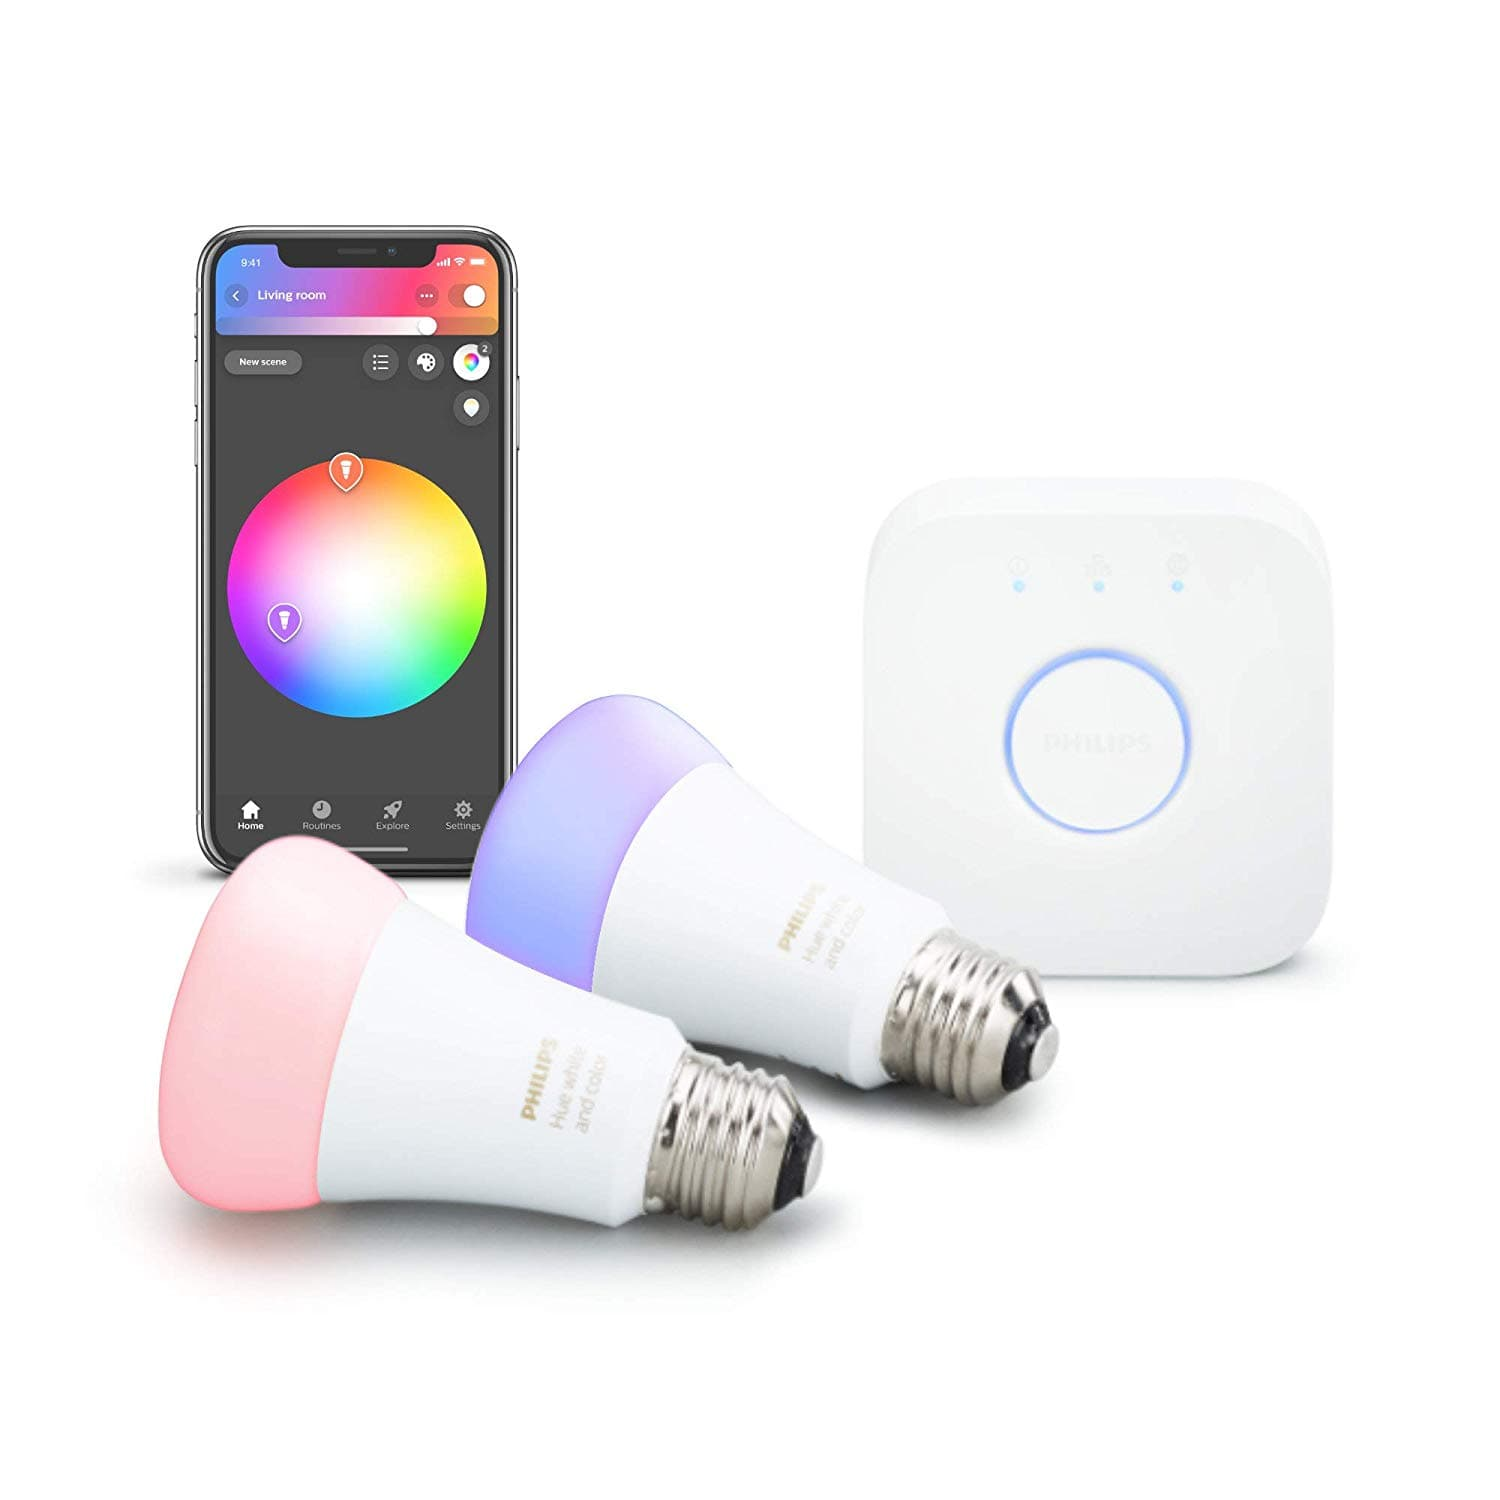 Philips Hue 2-Pack Premium Smart Light Starter Kit, With Hub 16